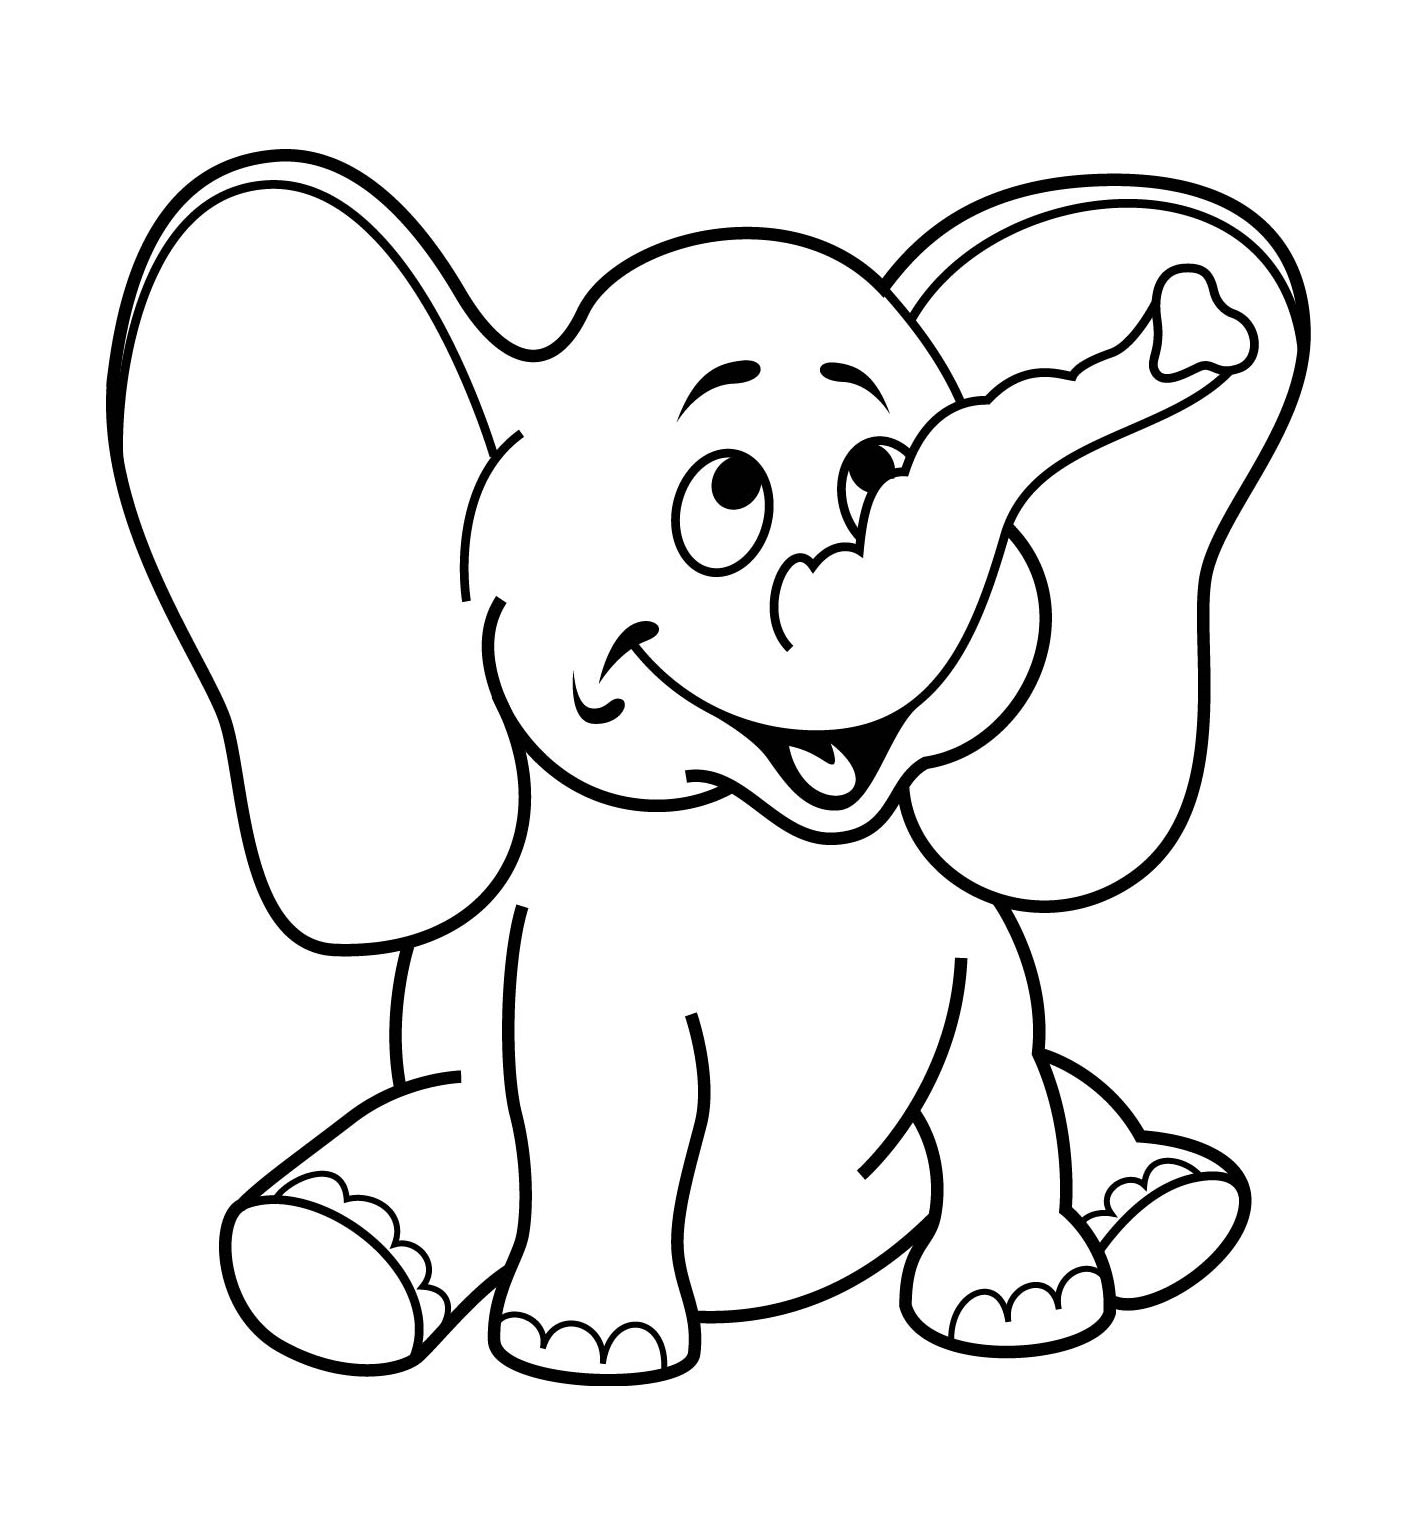 Free Coloring Pages For 2 Year Olds : Coloring pages for 3 4 year old girls, 3,4 years, nursery to print for free